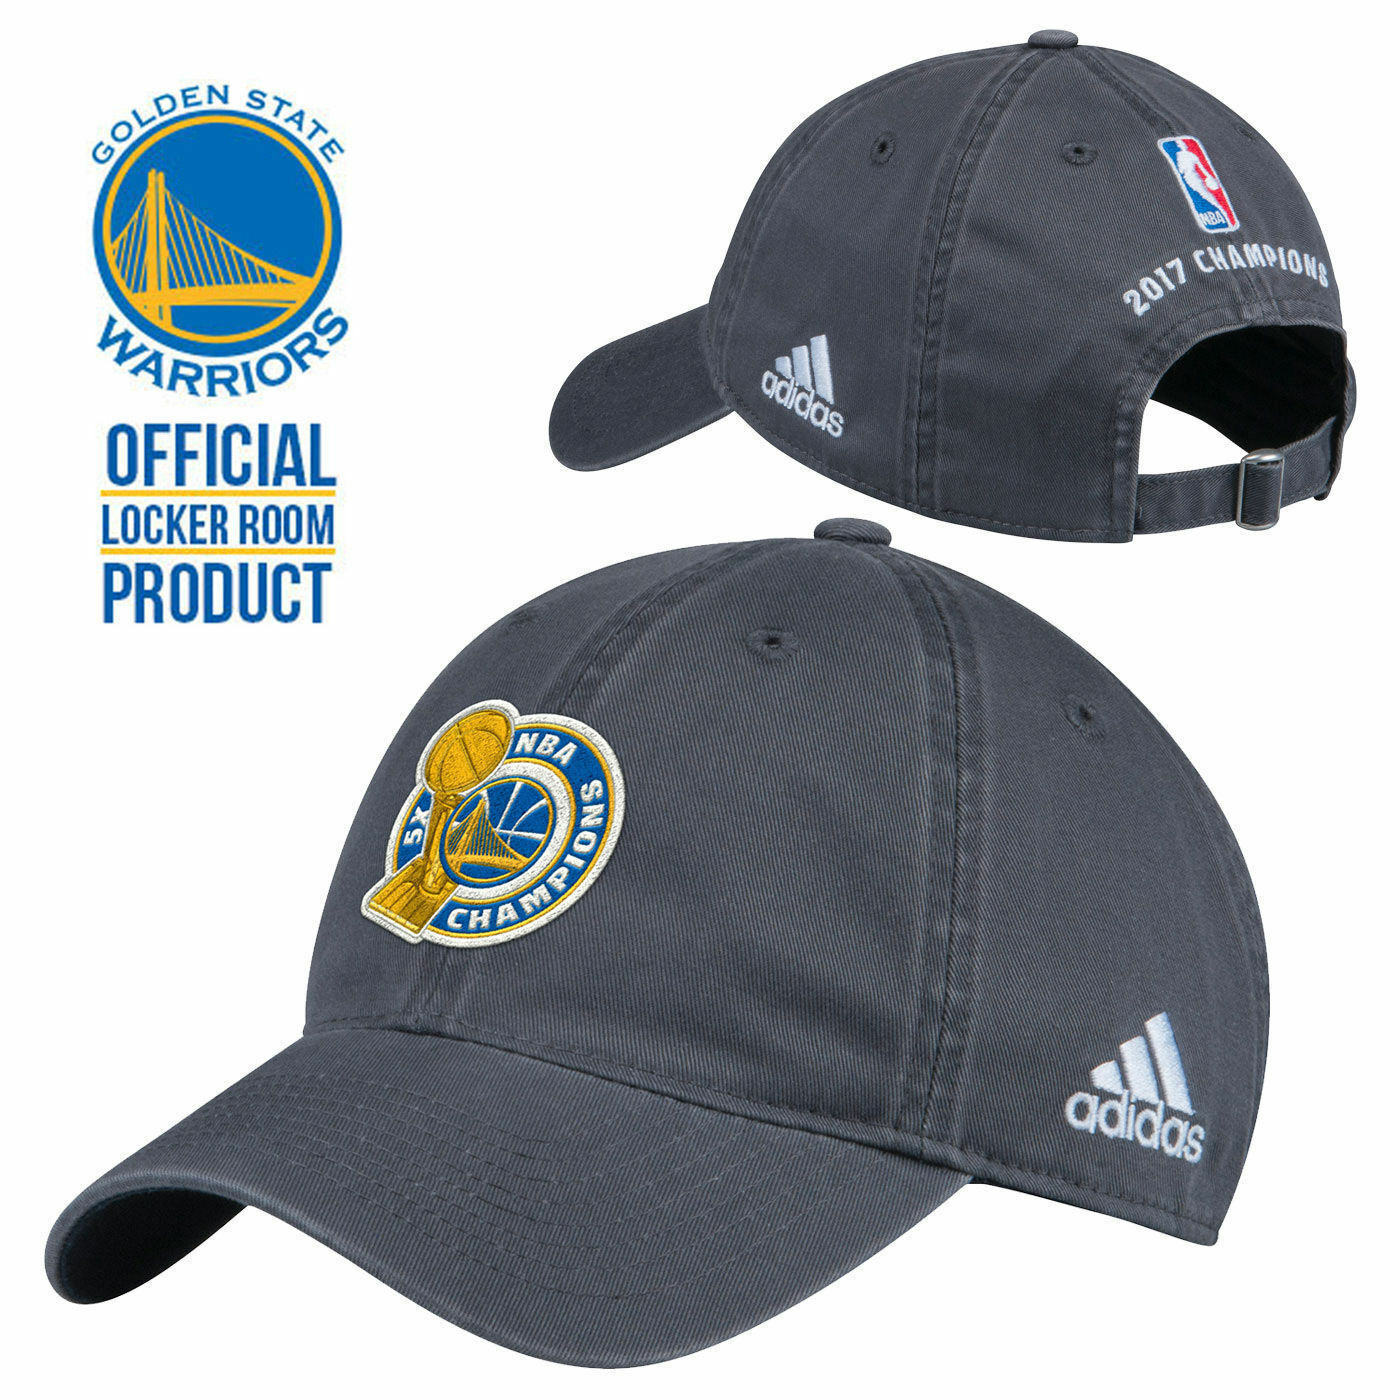 Primary image for NBA Golden State Warriors Adidas 2017 Basketball Champions Slouch Cap Dad Hat